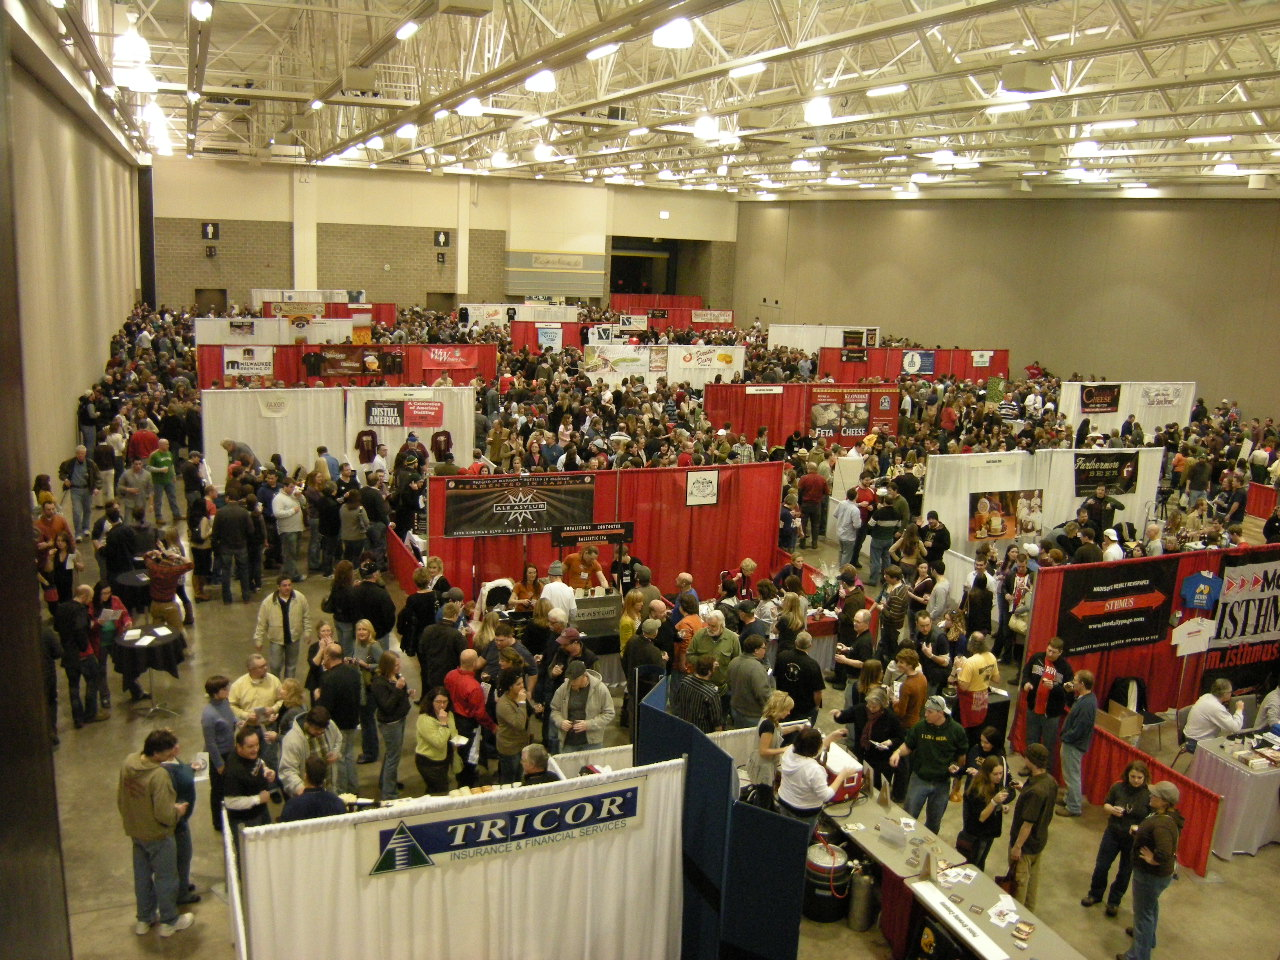 Isthmus Beer & Cheese 2011